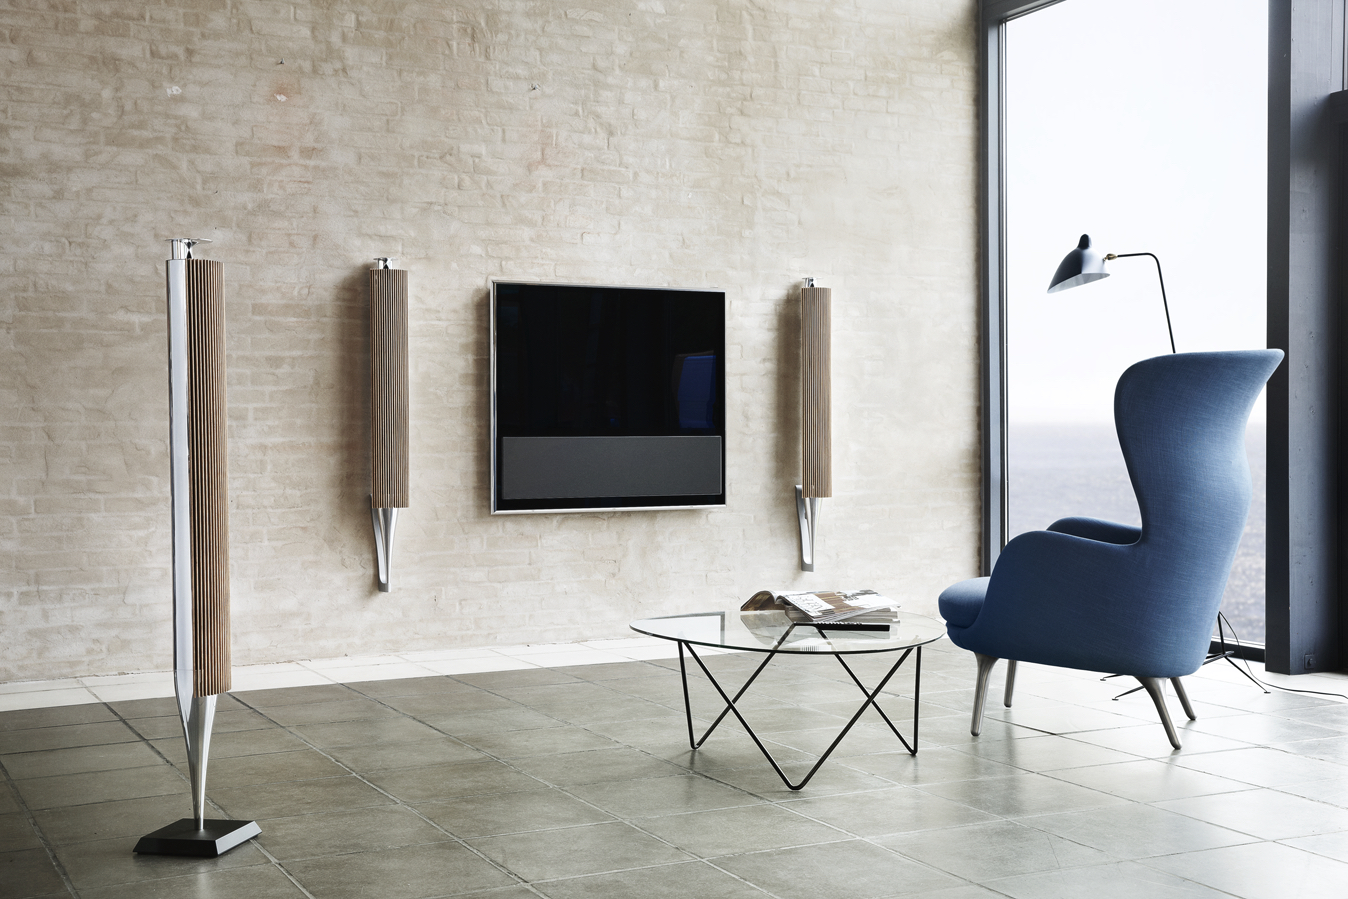 illustration of the wisa concept with a wisa enabled Tv directly transmitting sound in HD audio quality to a surround speaker set - photograph courtesy of B&o